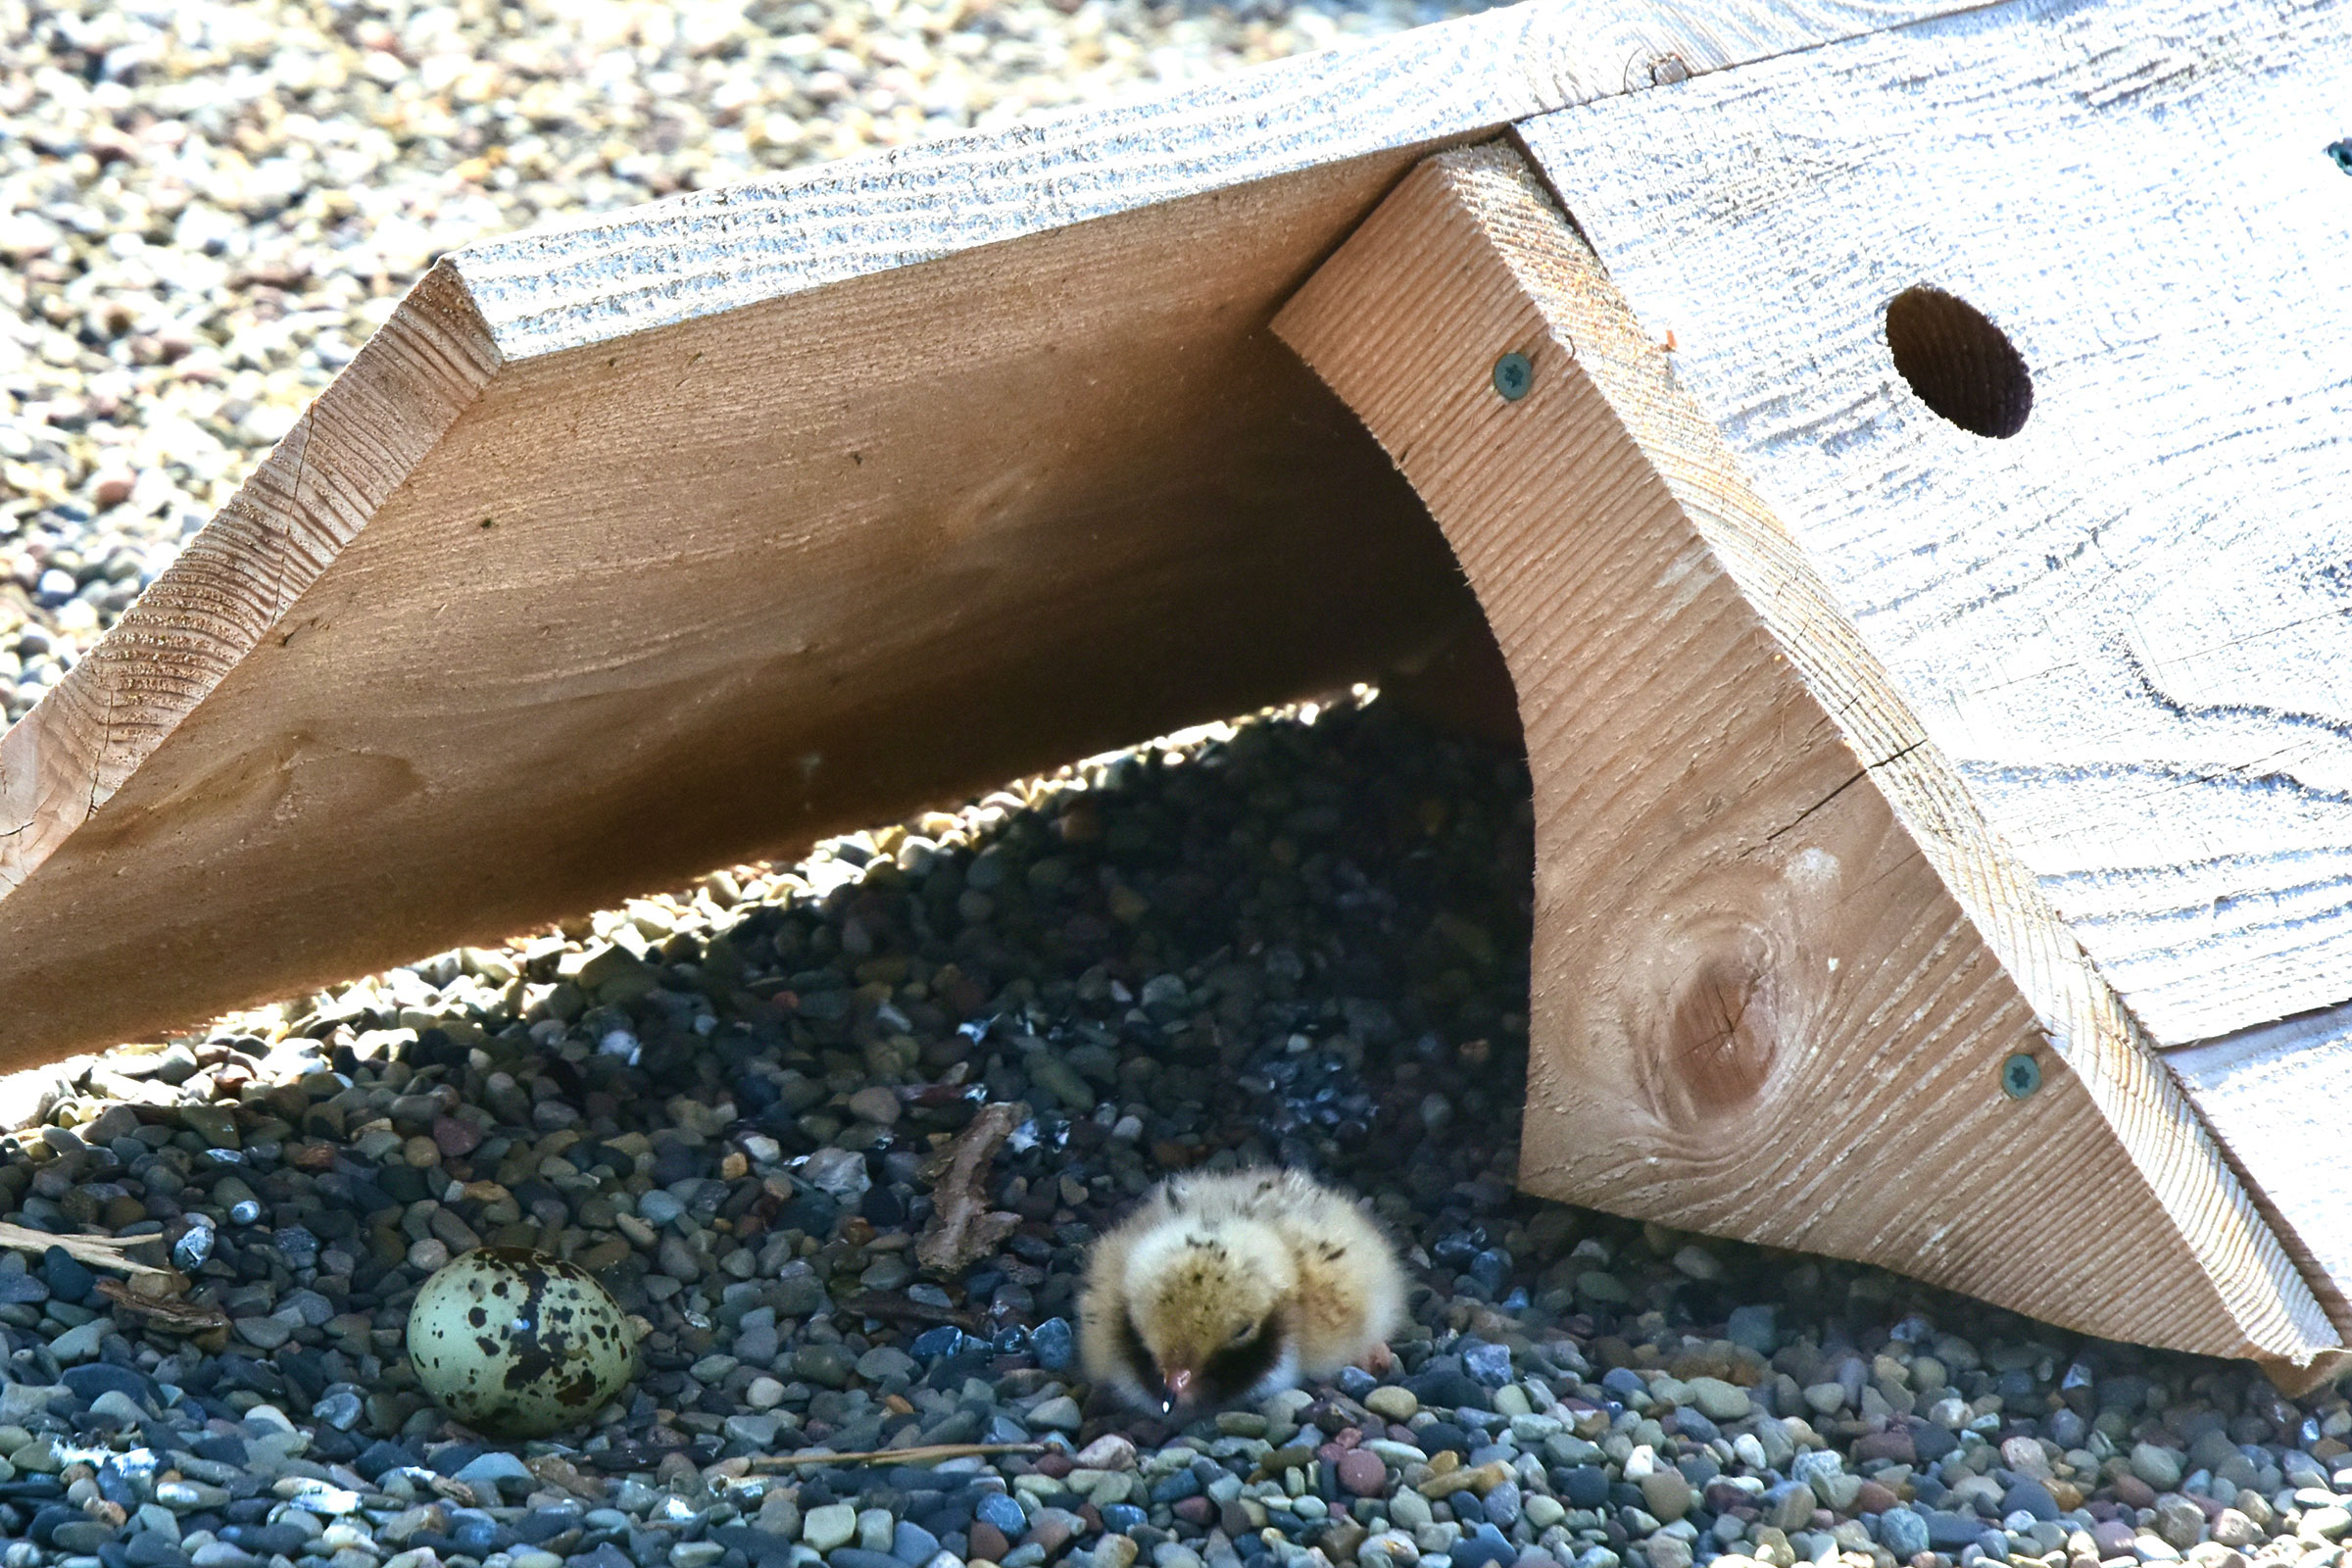 small fluffy beige and white bird hunkers down in gravel next to a wooden shelter